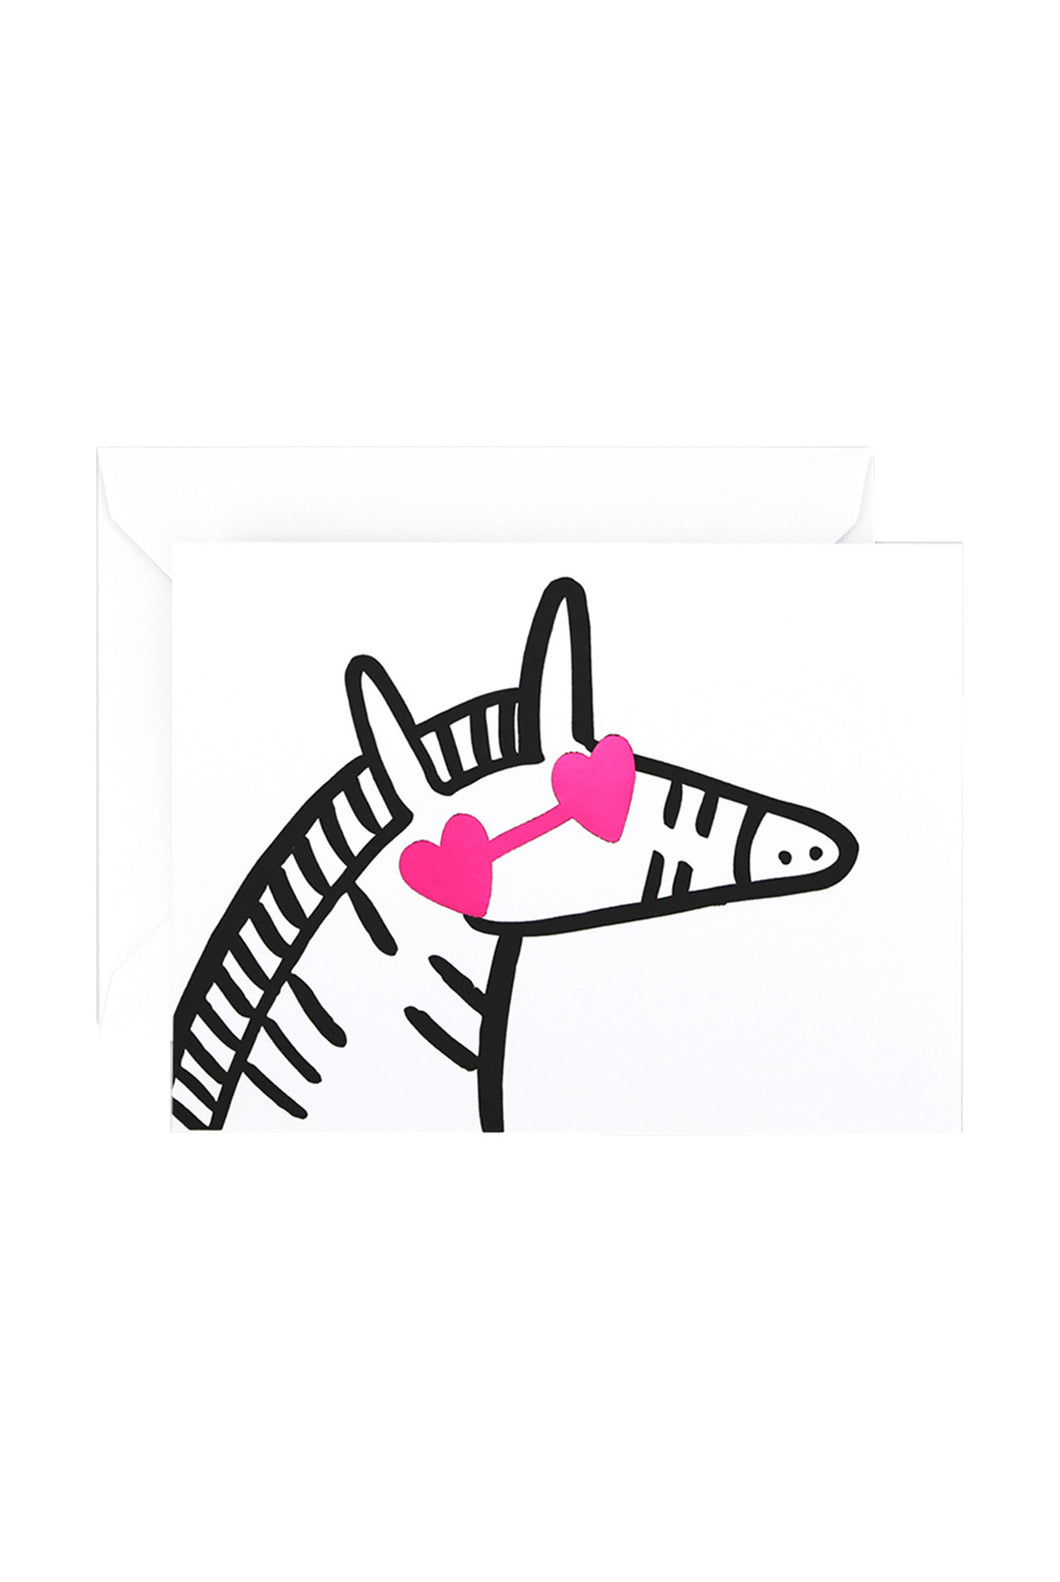 WRAP - Alice Bowsher Collection - Single Letterpress Card - Zebra